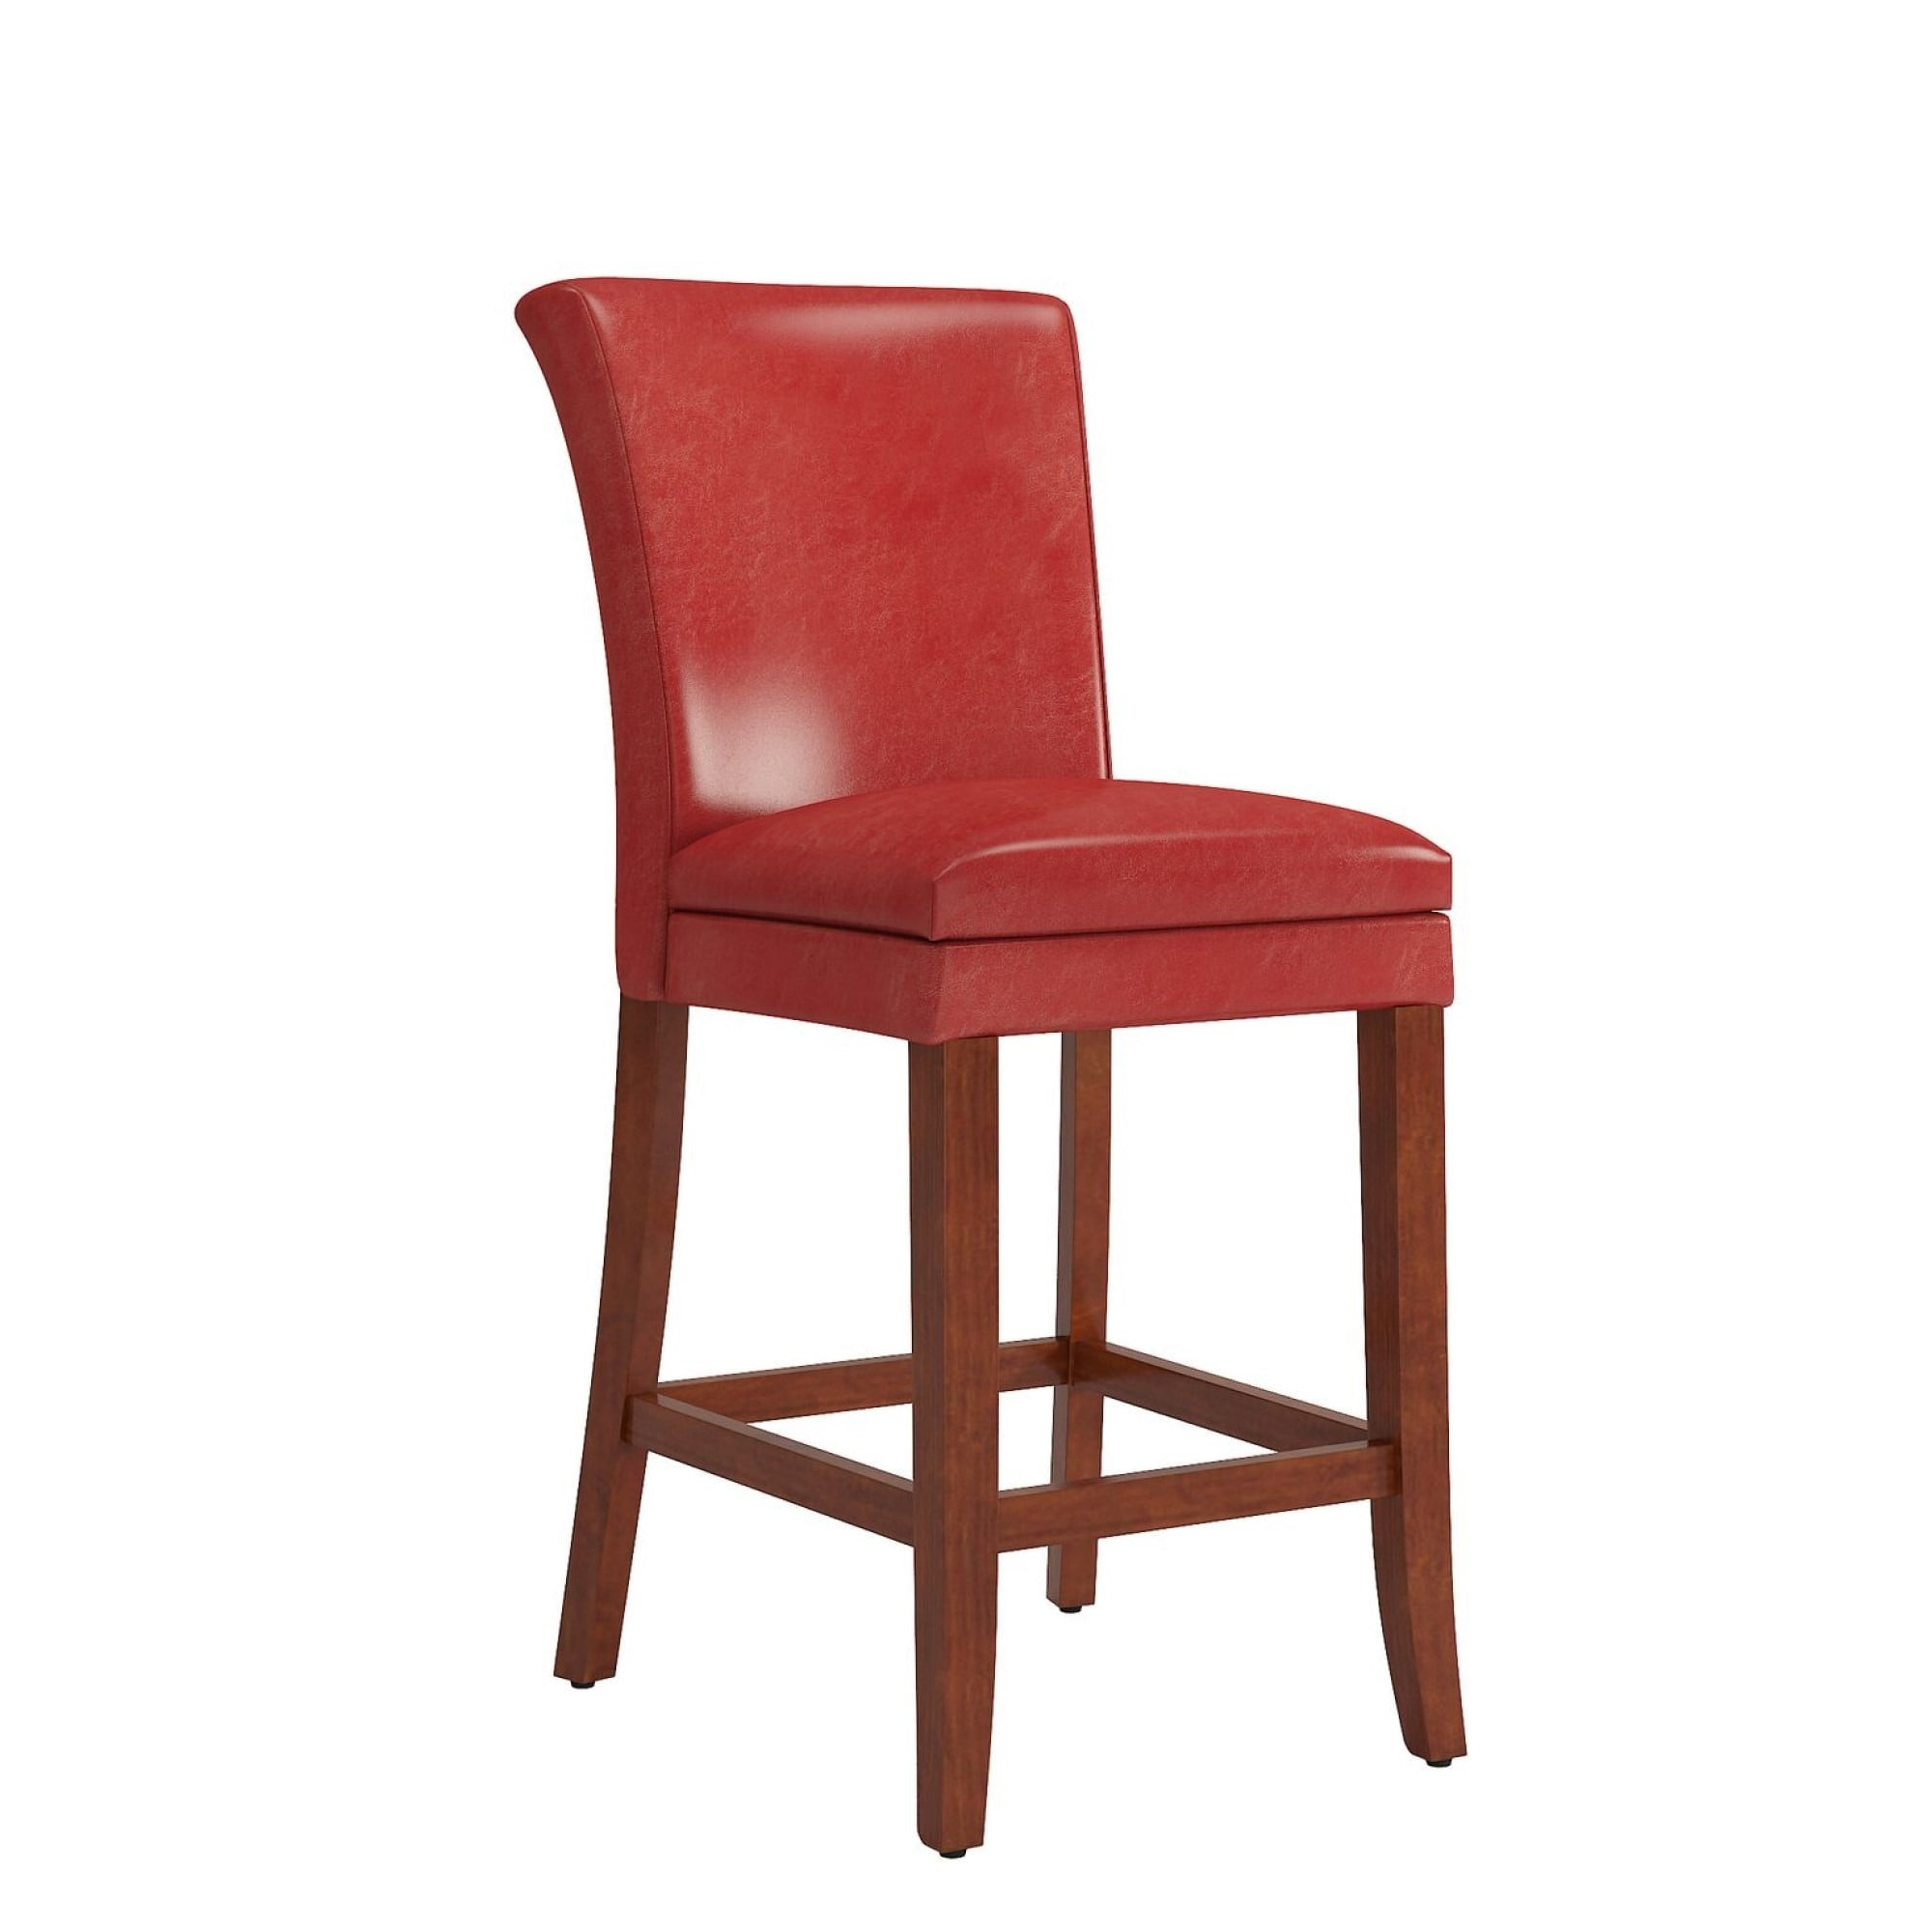 e5d6b4445e9 Shop Parson Classic Upholstered Counter Height High Back Chairs (Set of 2)  by iNSPIRE Q Bold - Free Shipping Today - Overstock - 3471658